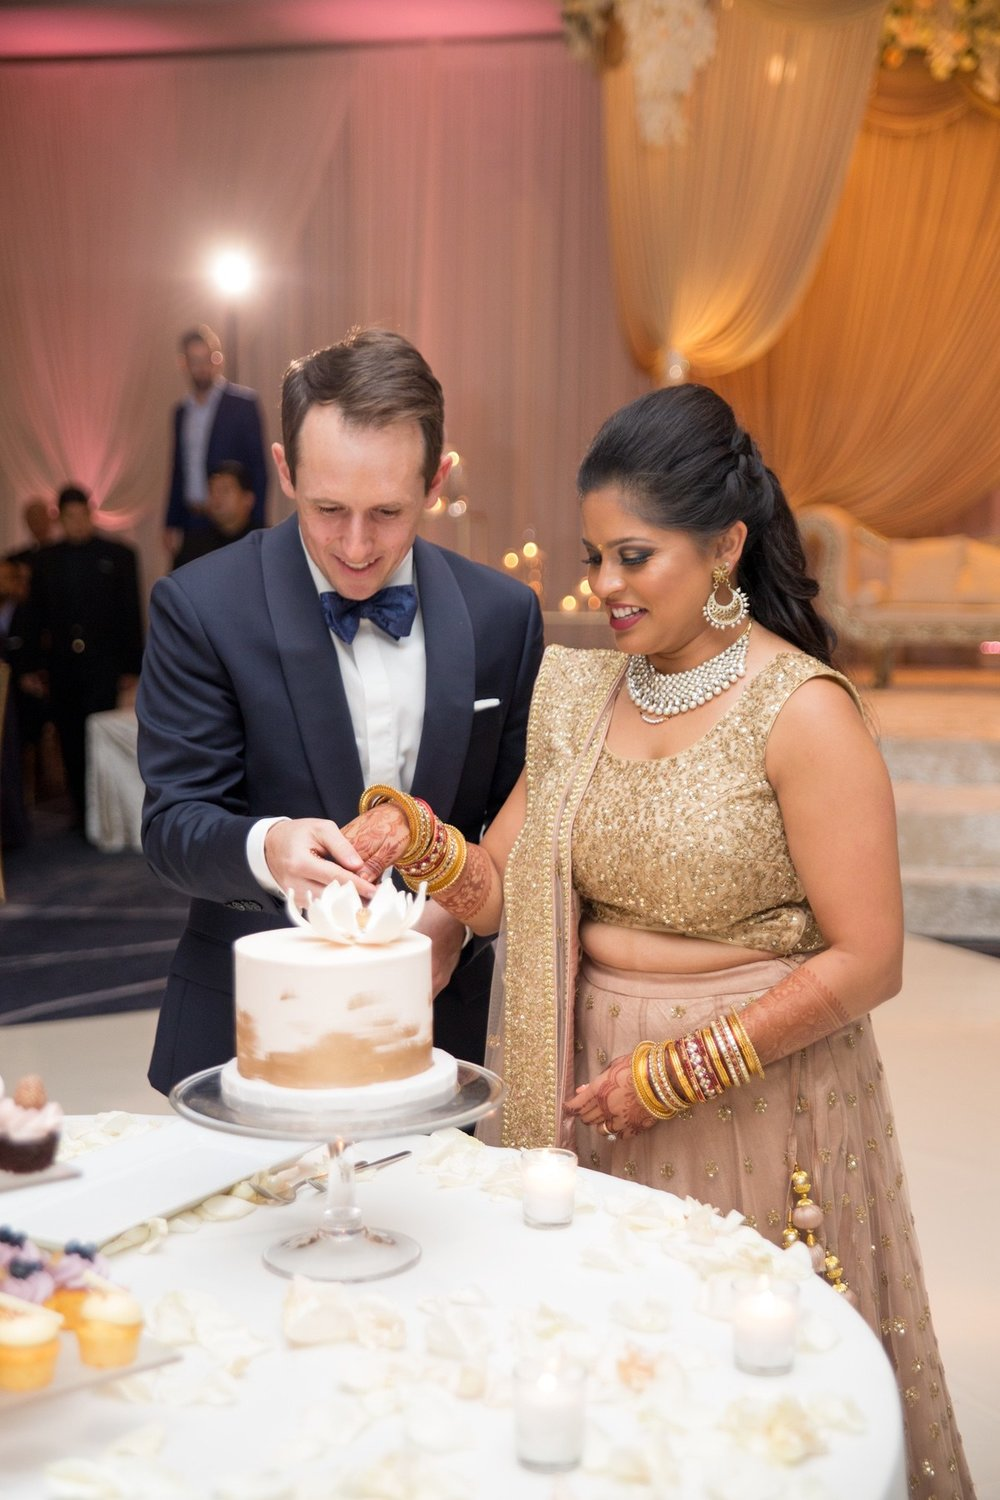 Le Cape Weddings - South Asian Wedding - Trisha and Jordan - Reception -31.jpg